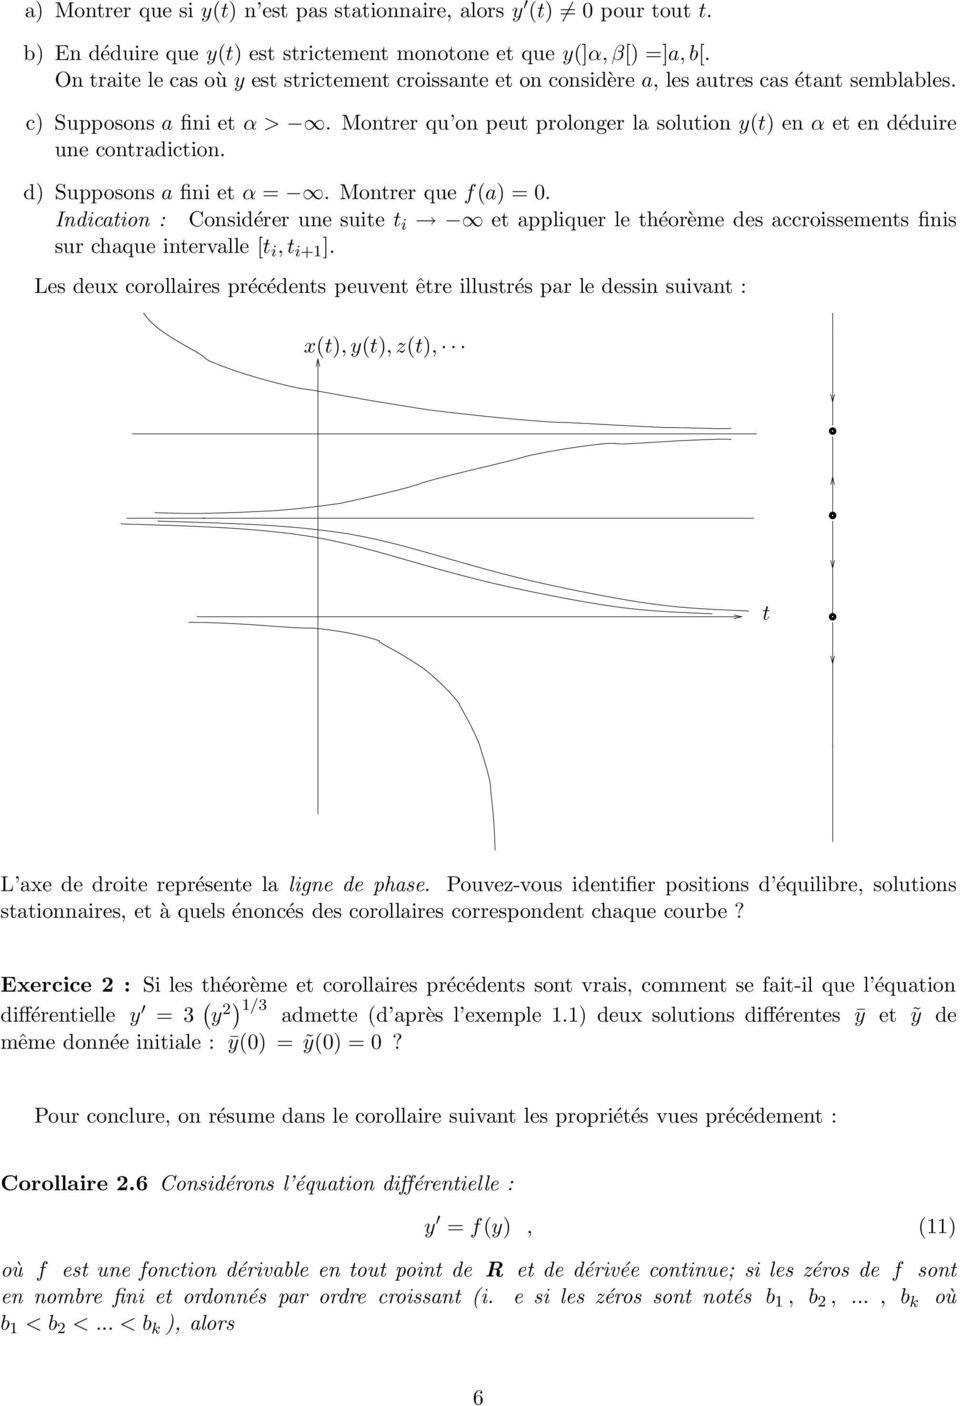 Montrer qu on peut prolonger la solution y(t) en α et en déduire une contradiction. d) Supposons a fini et α =. Montrer que f(a) = 0.